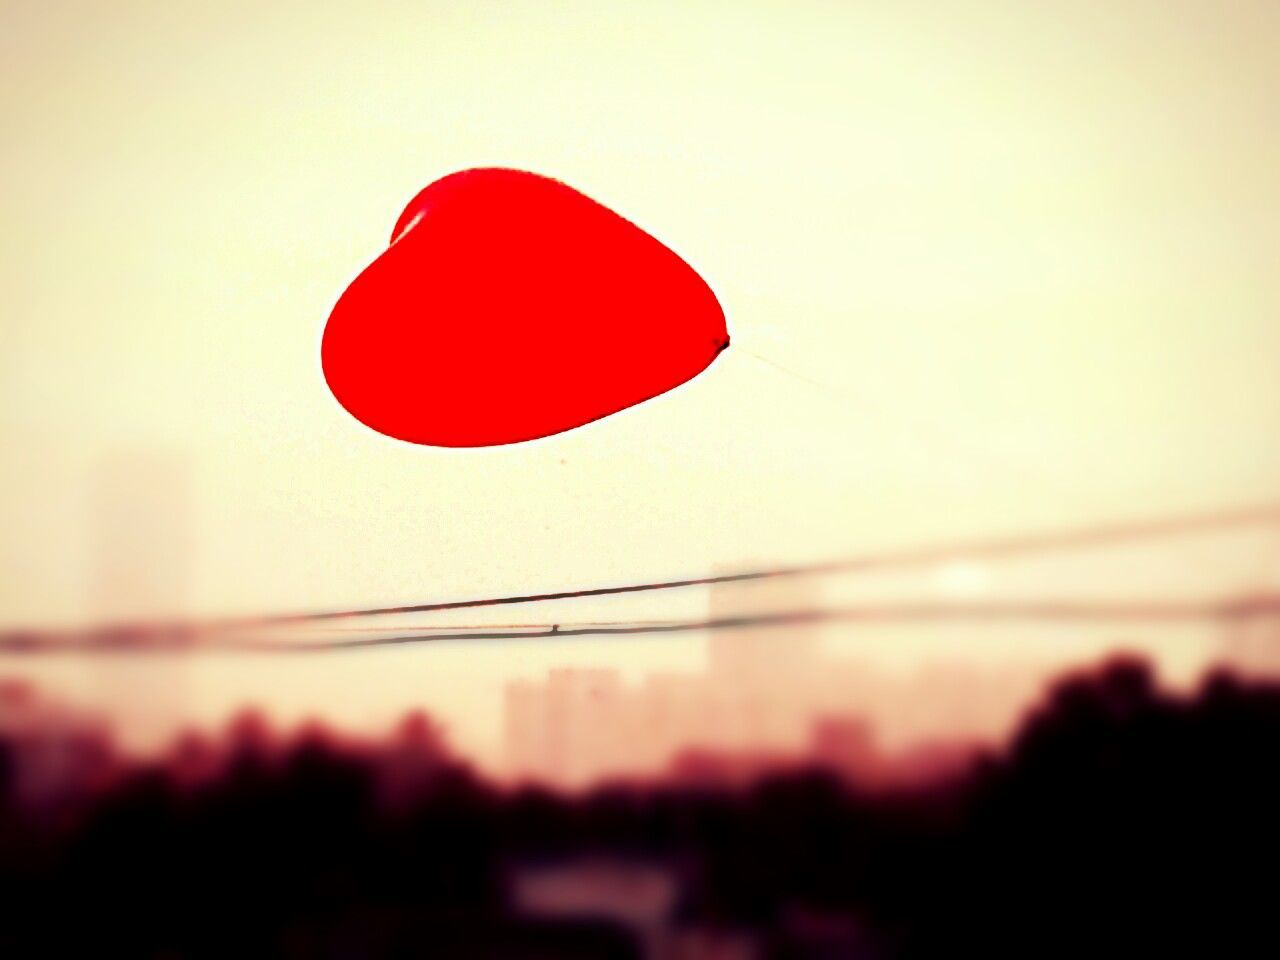 red, sky, sunset, nature, no people, heart shape, balloon, close-up, love, outdoors, silhouette, shape, positive emotion, focus on foreground, clear sky, day, design, emotion, water